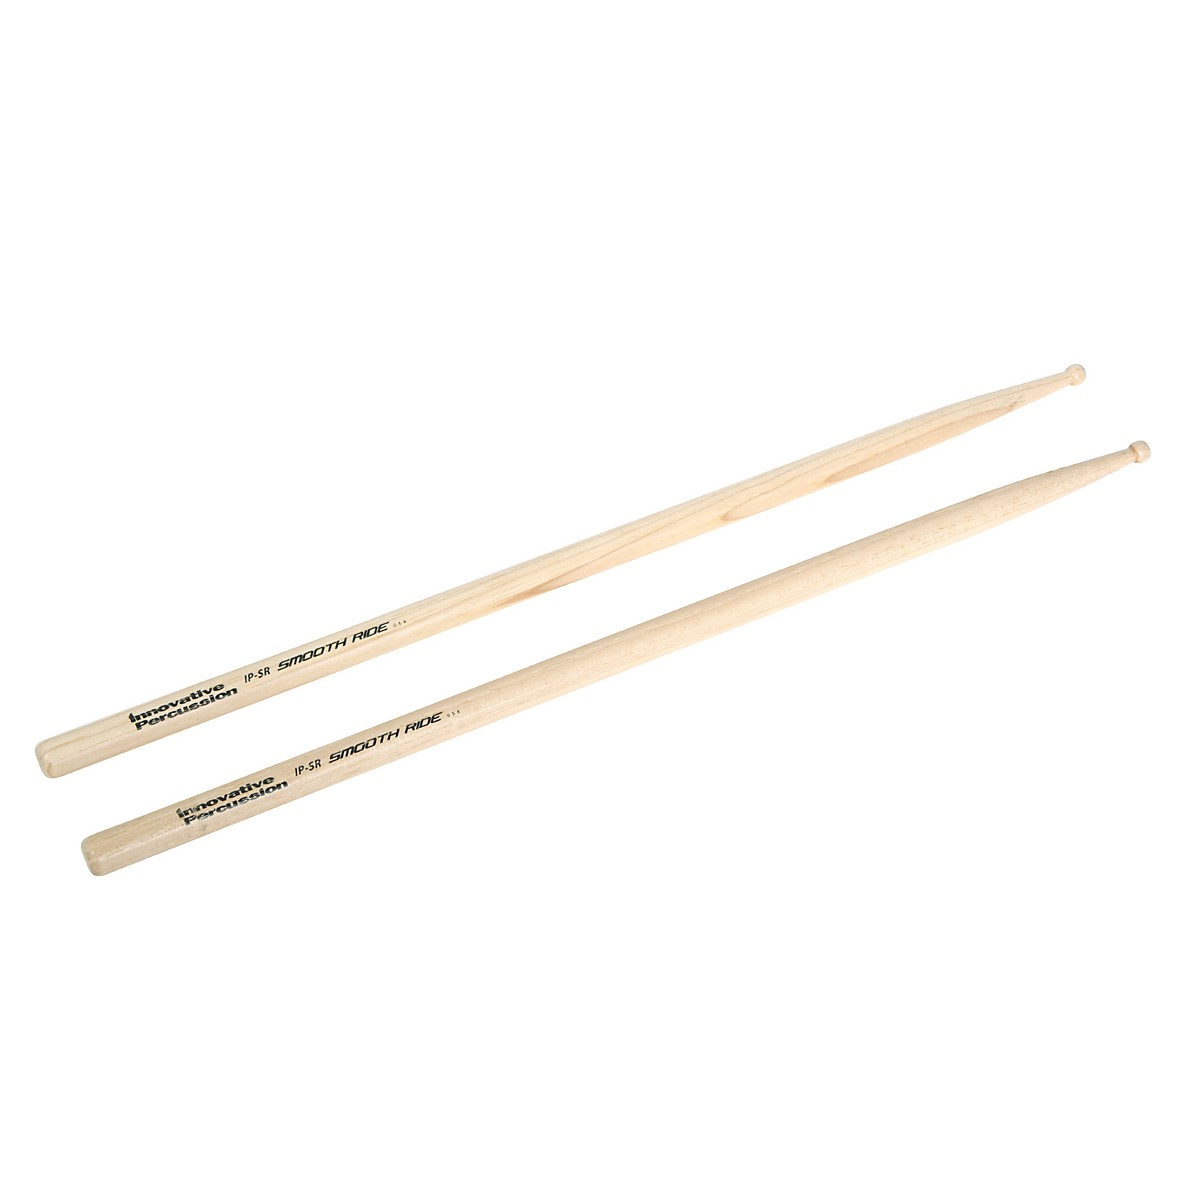 Innovative Percussion Combo Model Smooth Ride Drumstick